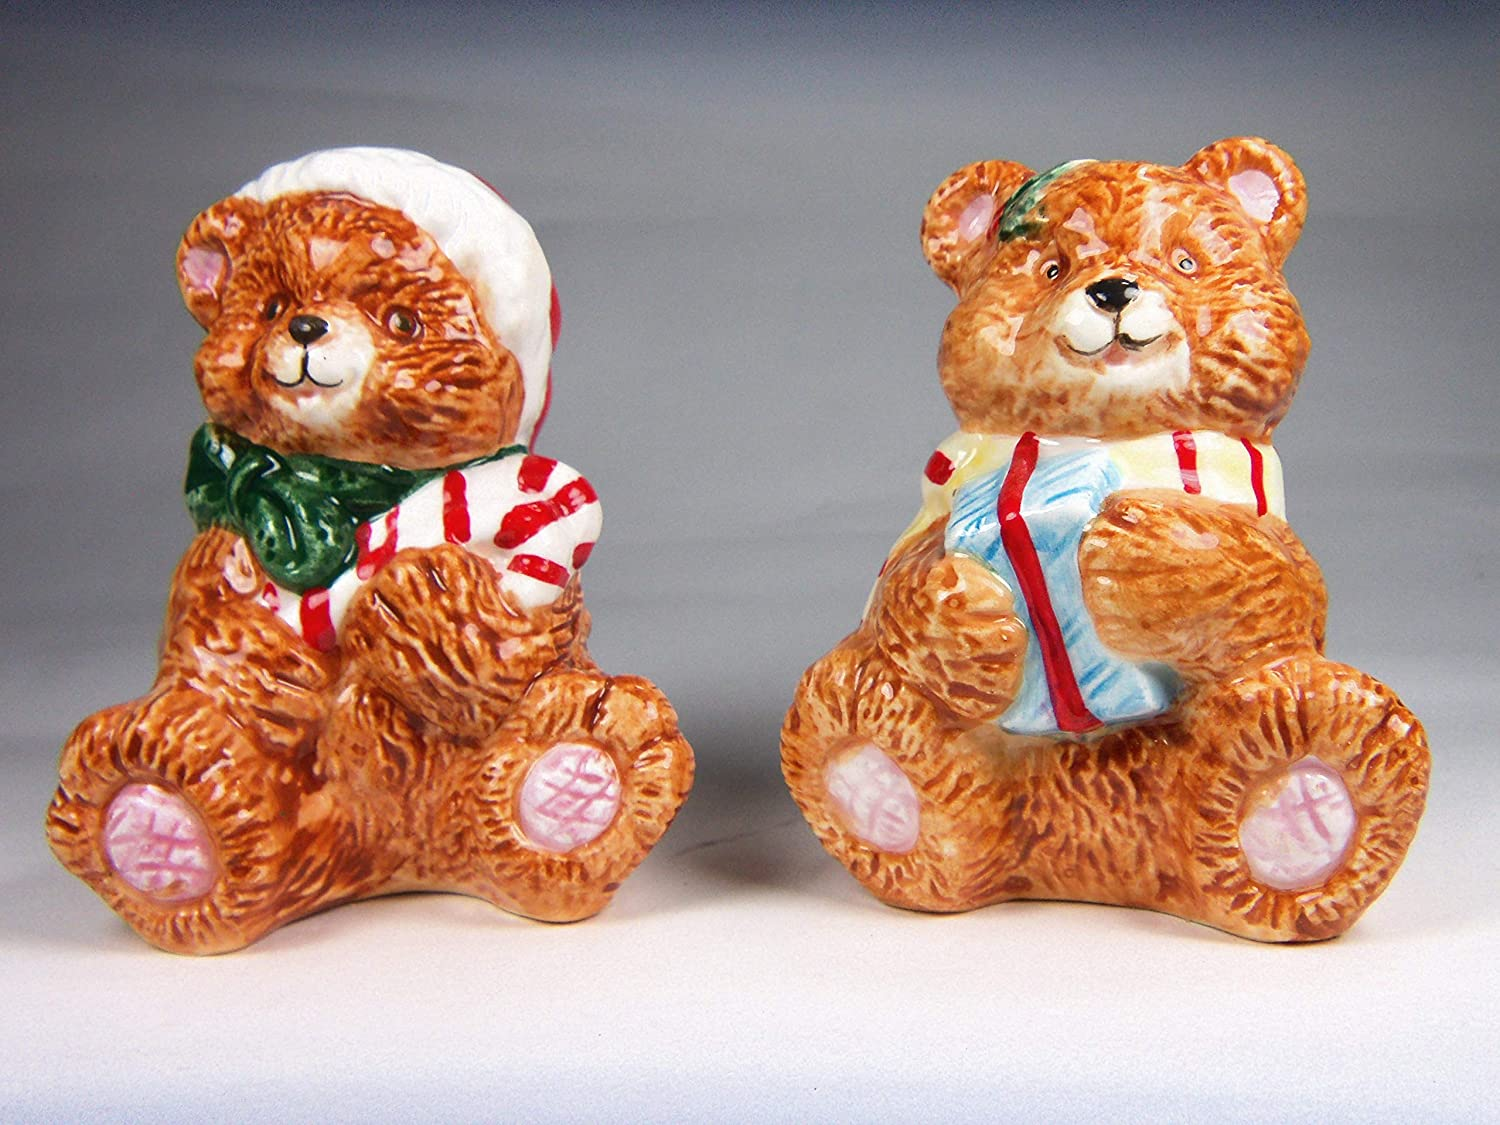 Fine Ceramic Christmas Teddy Bear Holding Popular product Candy Cane Be super welcome Present and